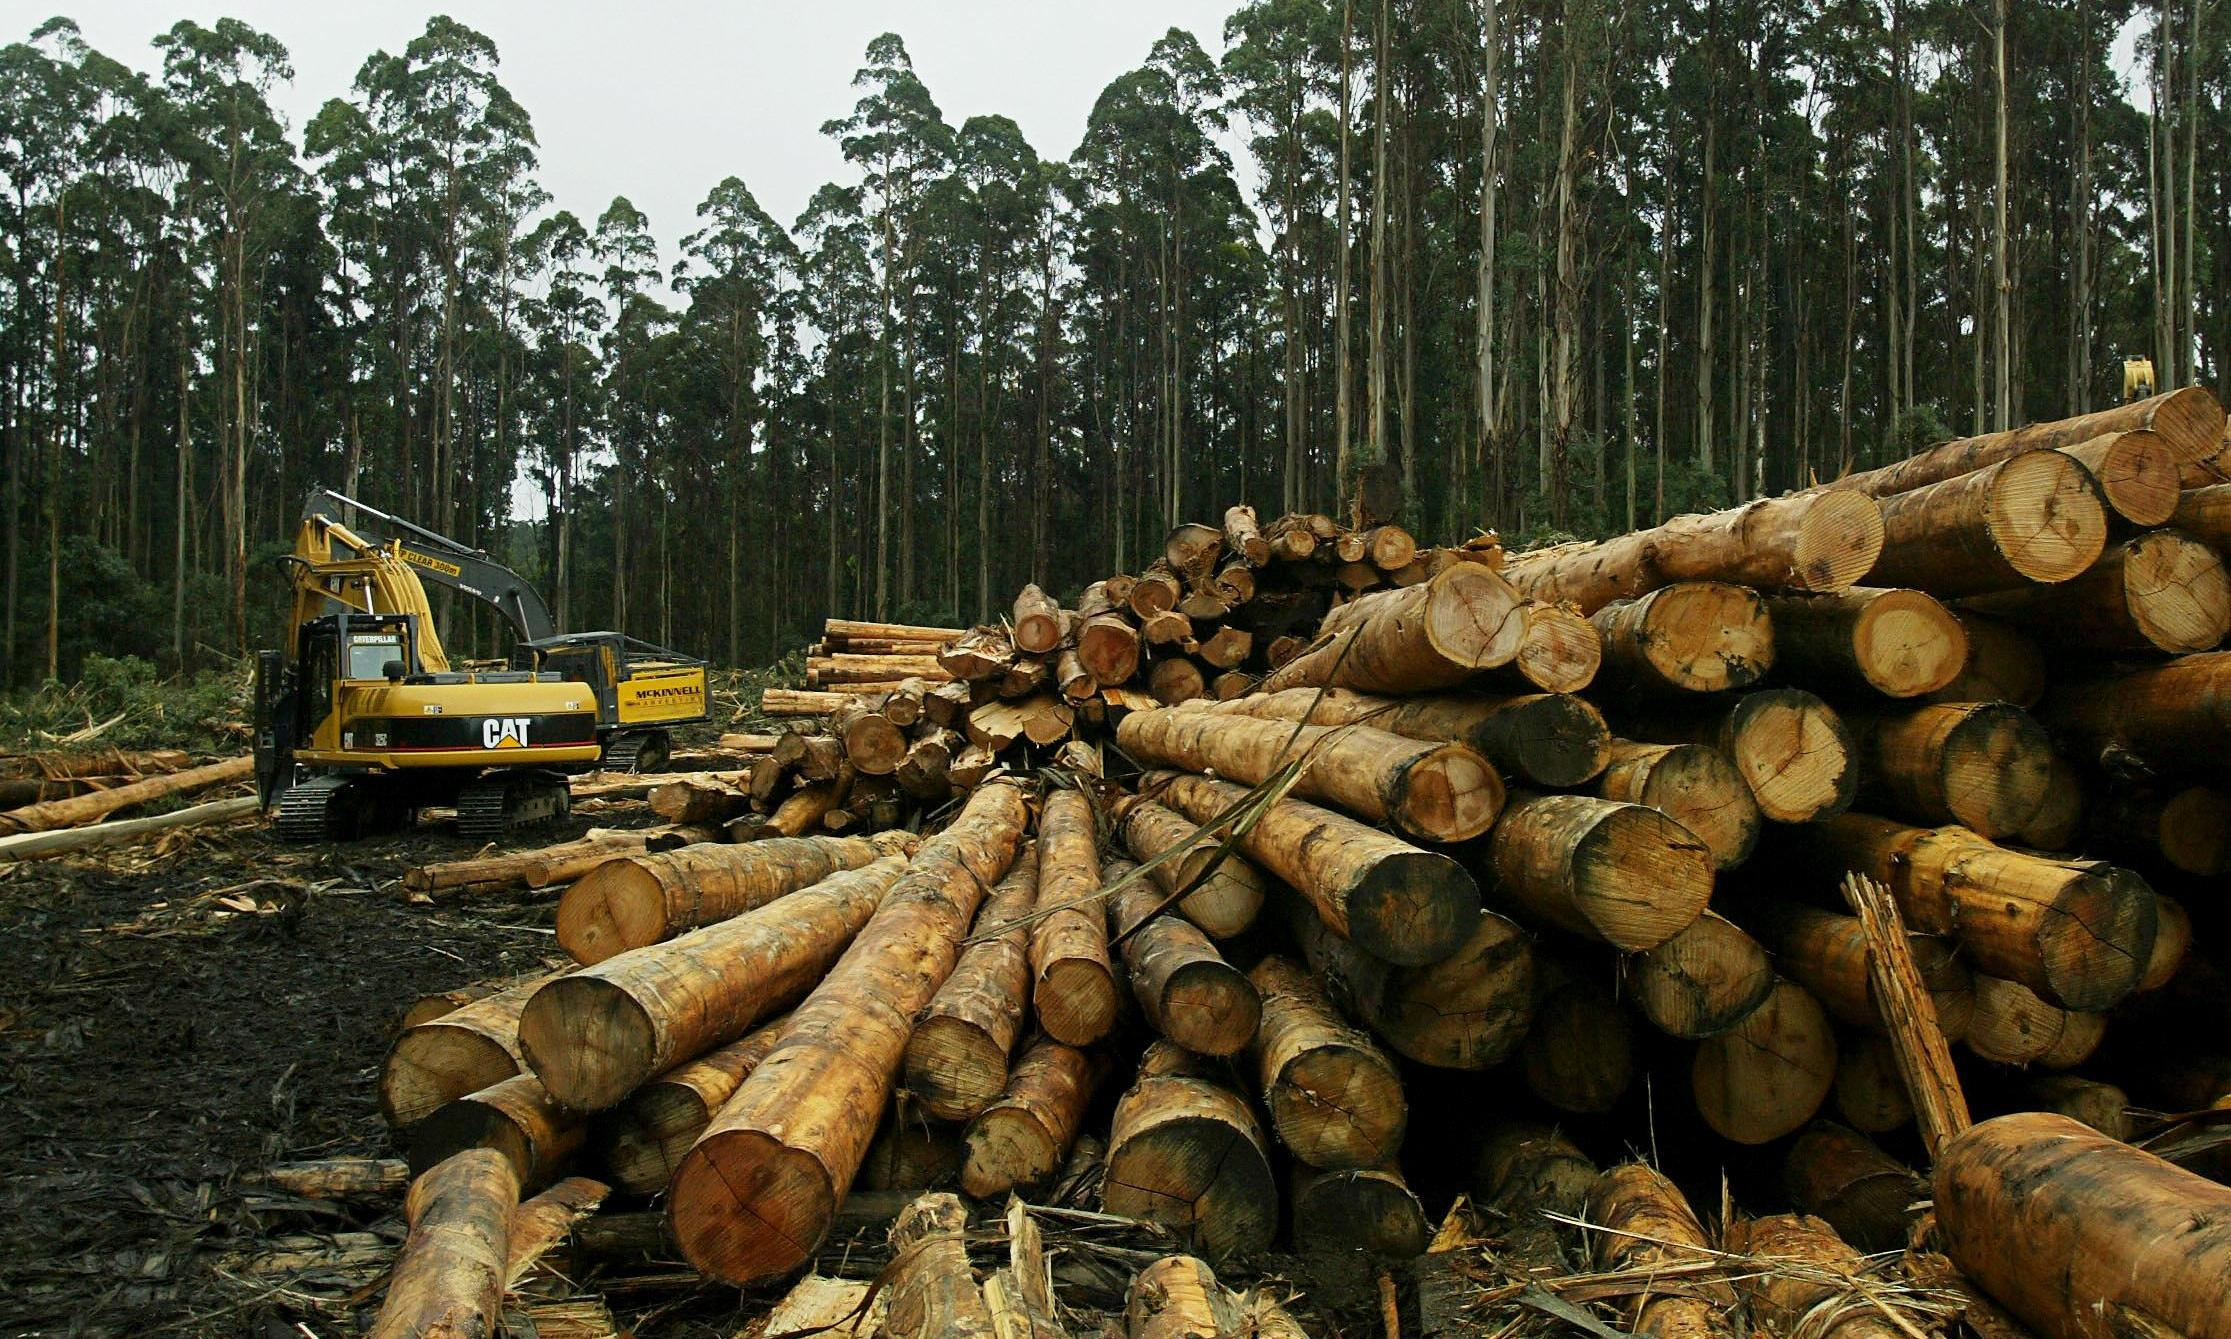 Melbourne loses 15bn litres of water annually from logging catchment, study finds